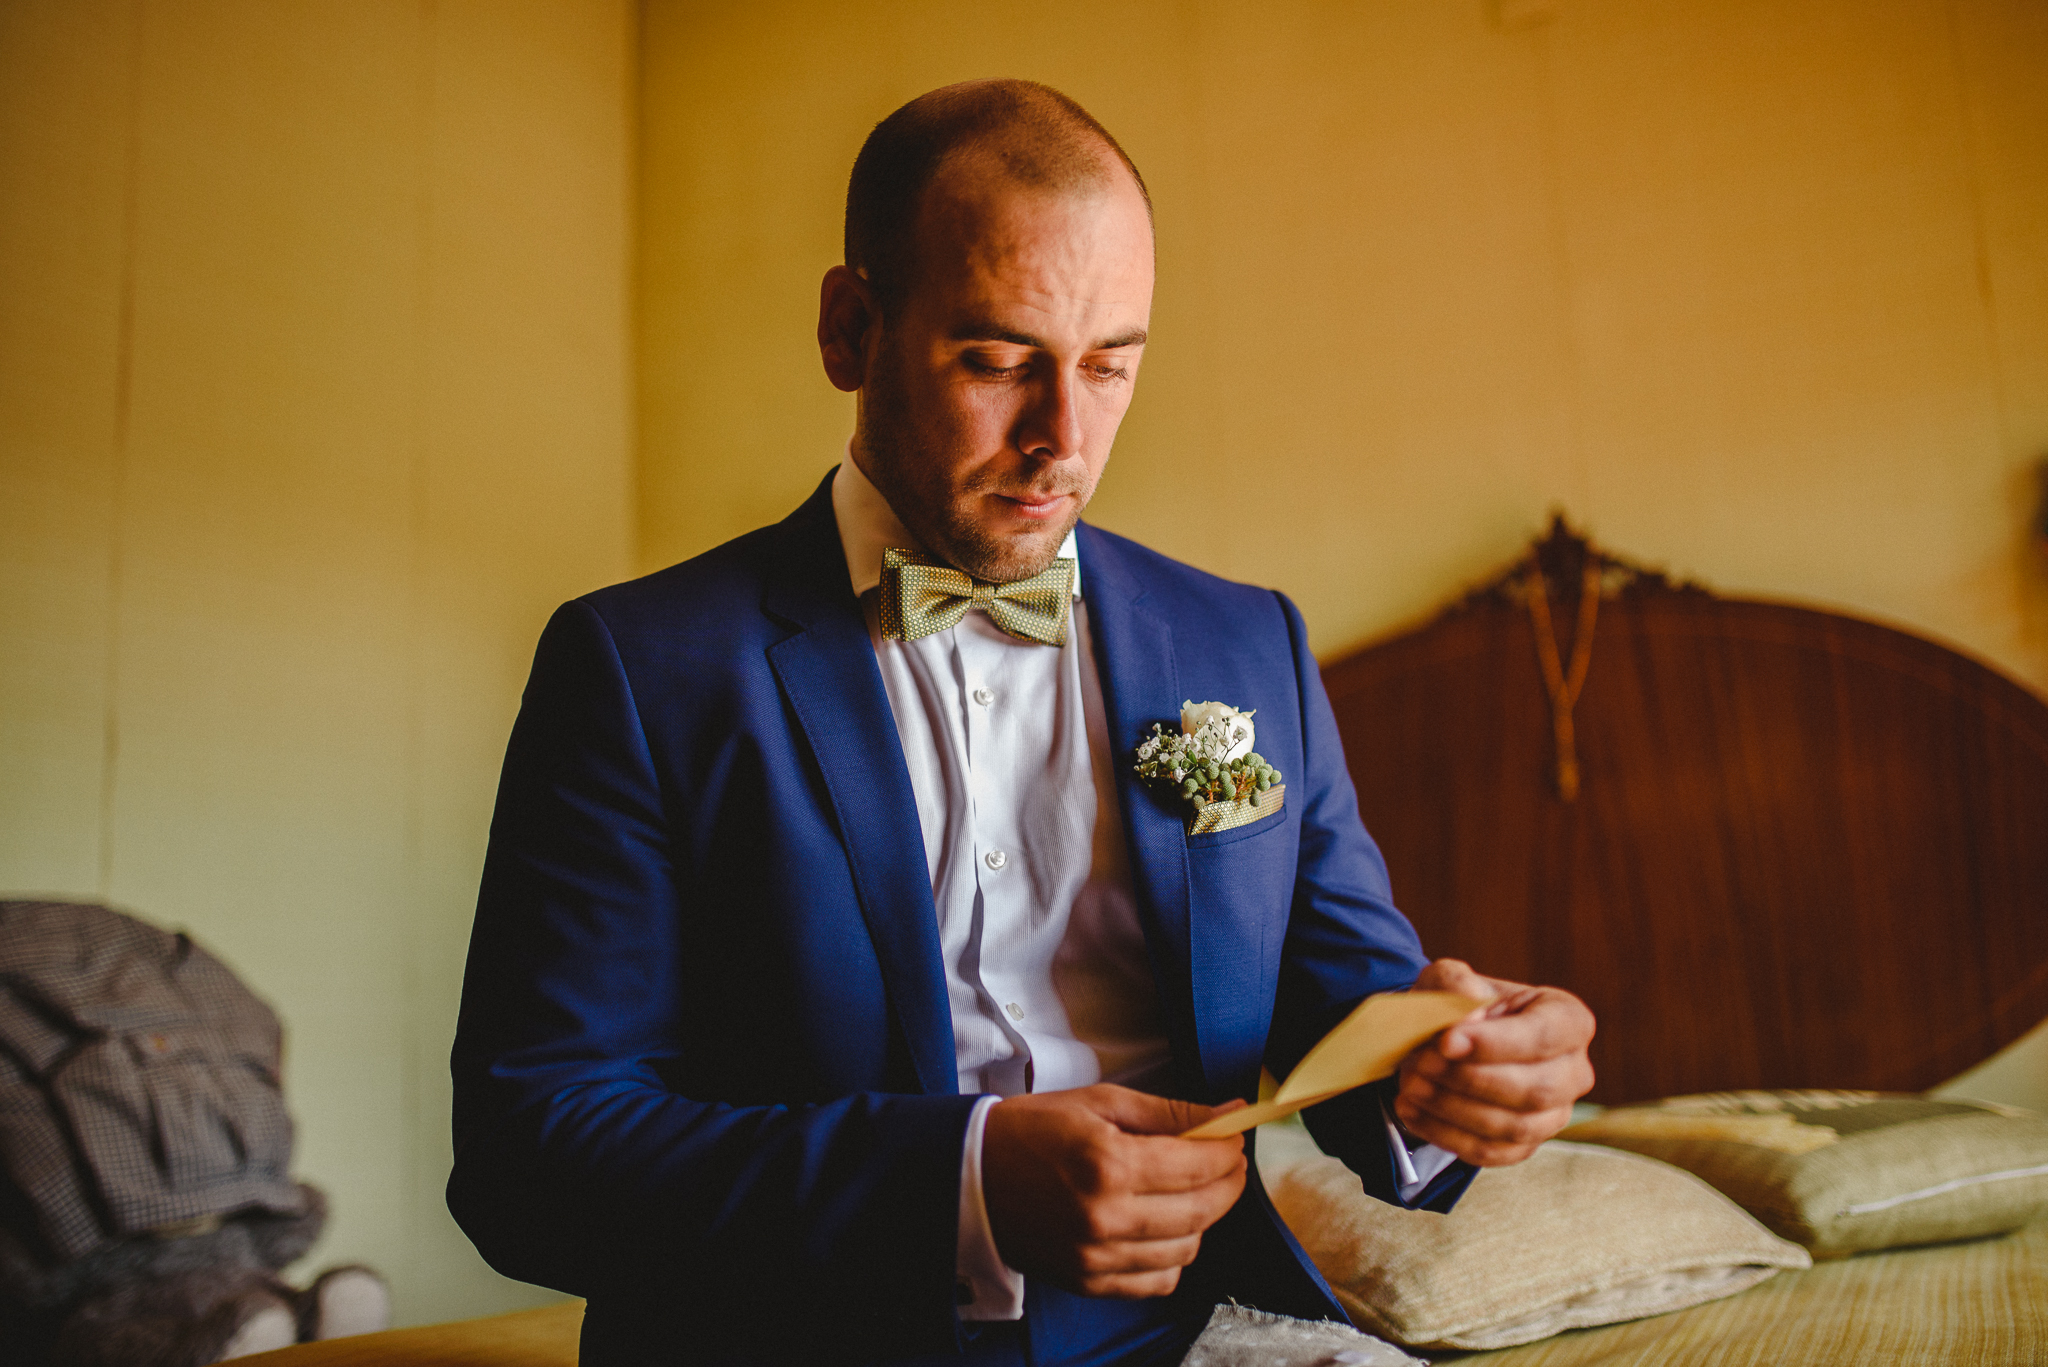 Groom reading a bride's letter